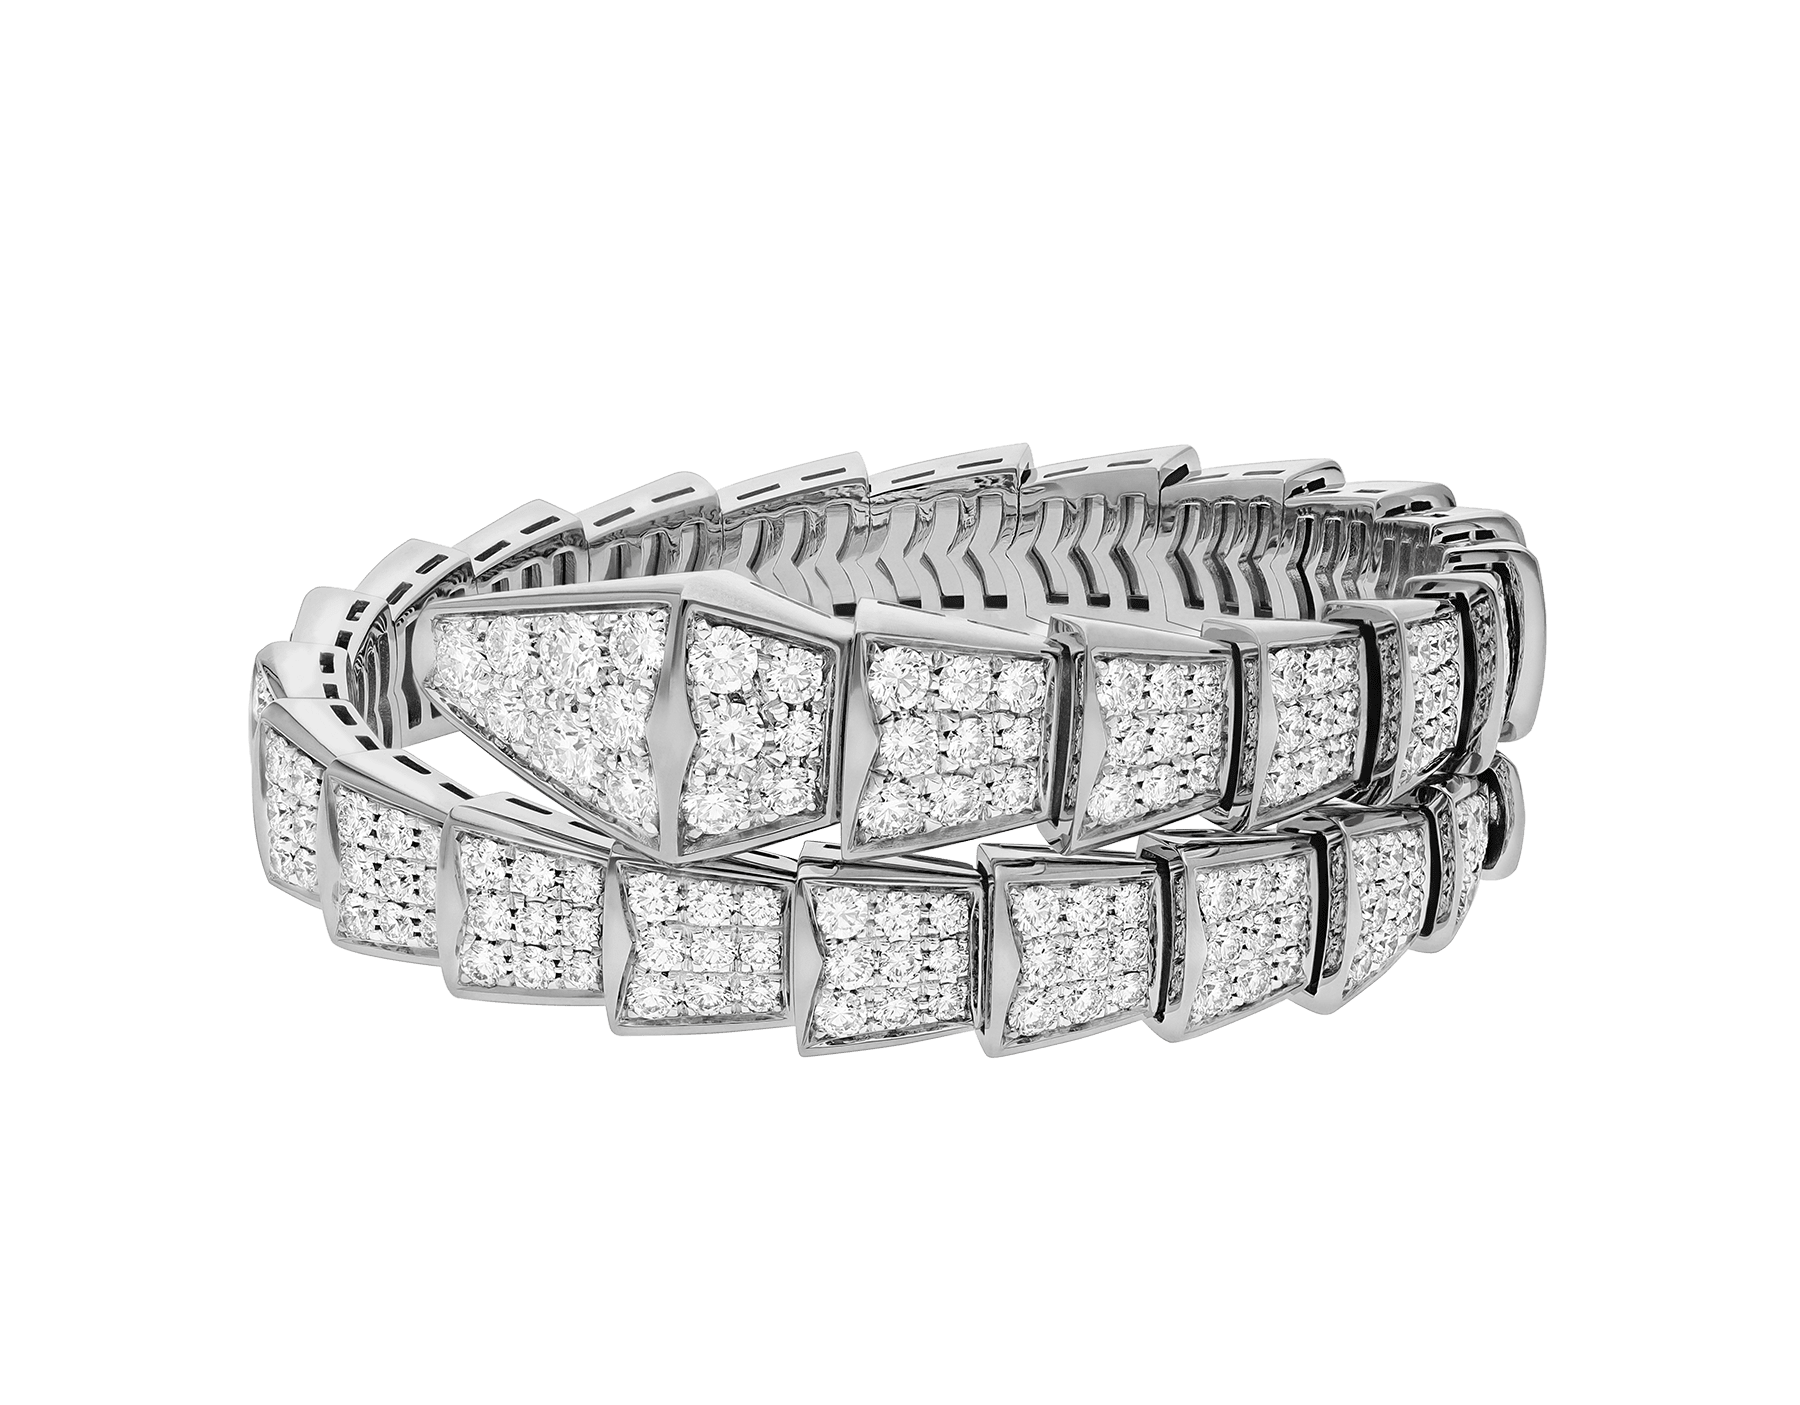 Serpenti Viper one-coil bracelet in 18 kt white gold, set with full pavé diamonds. BR855231 image 2